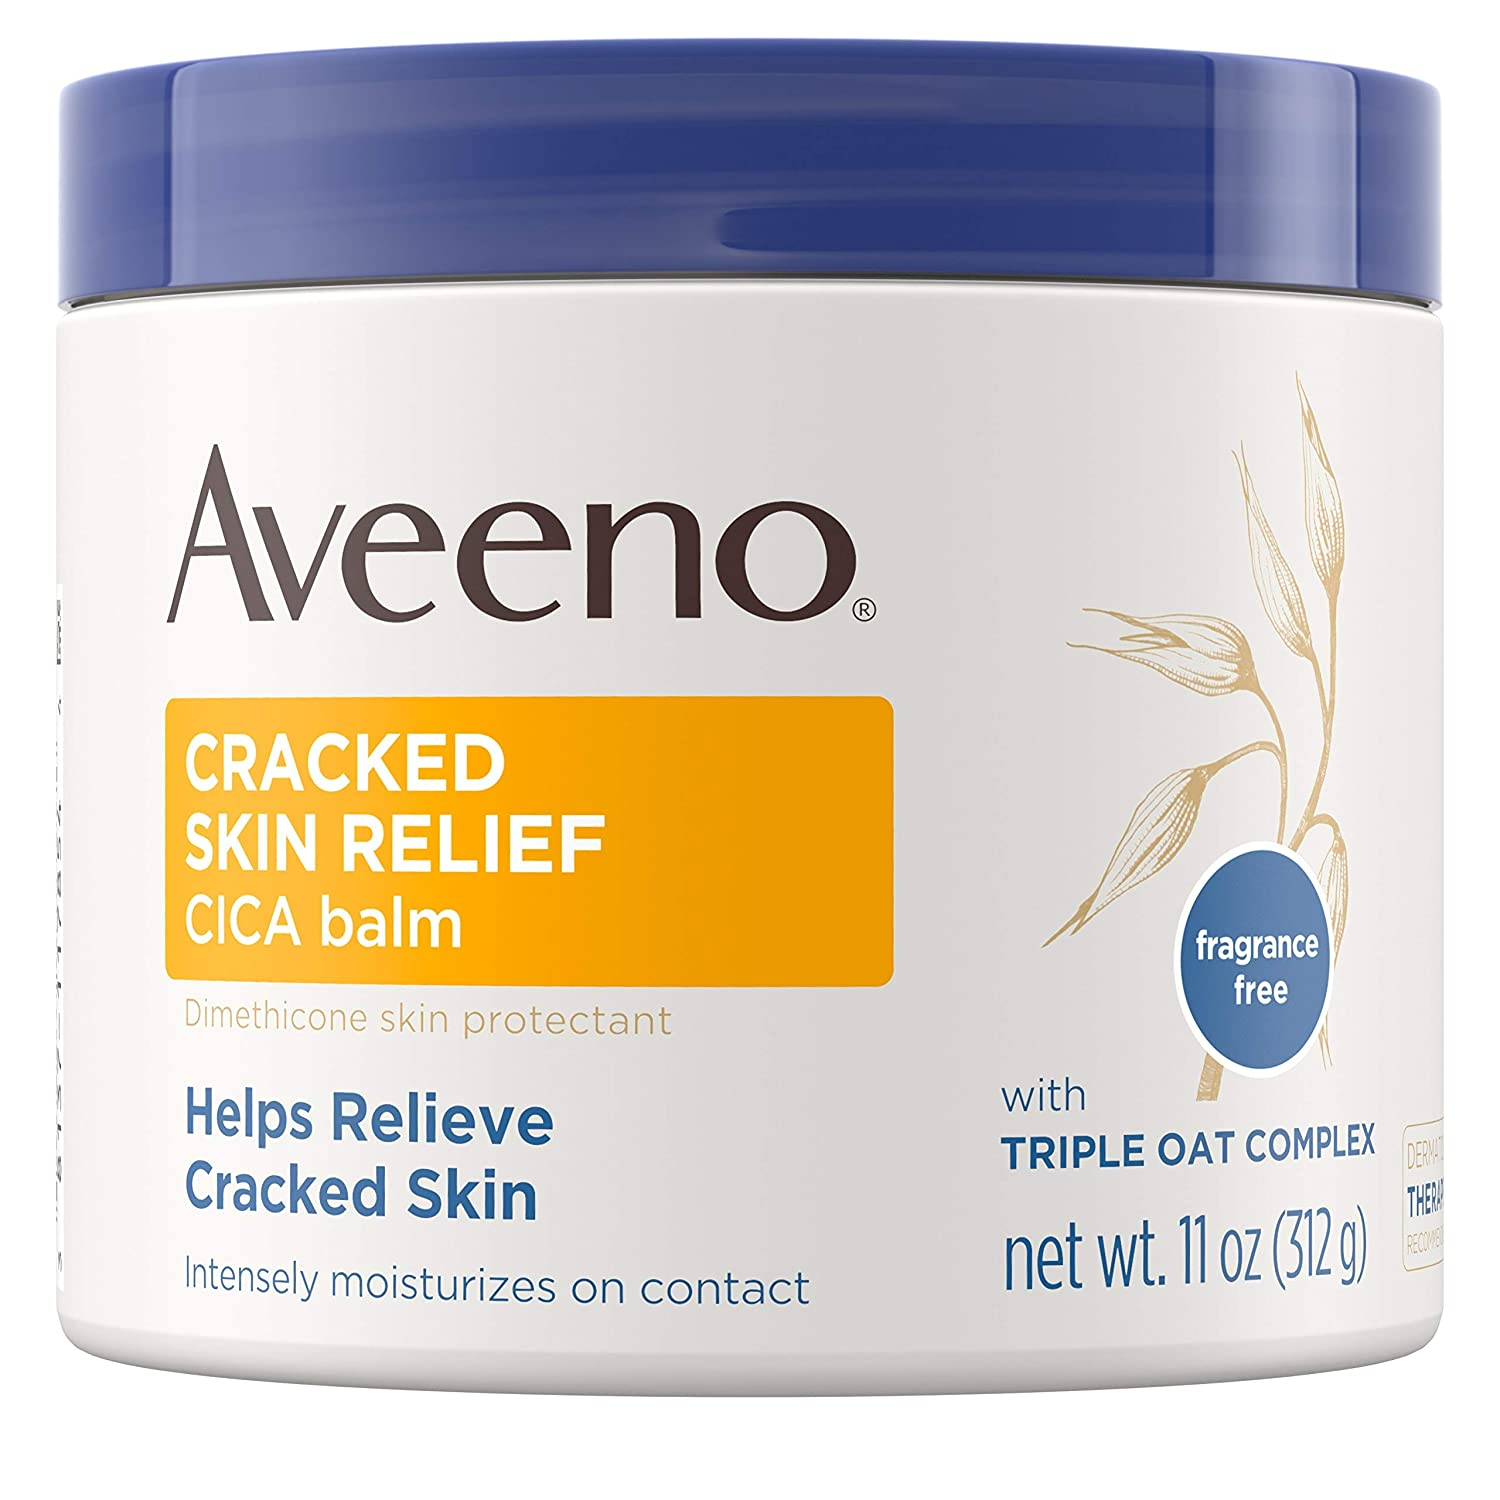 Aveeno Cracked Skin Relief CICA Balm with Triple Oat Complex